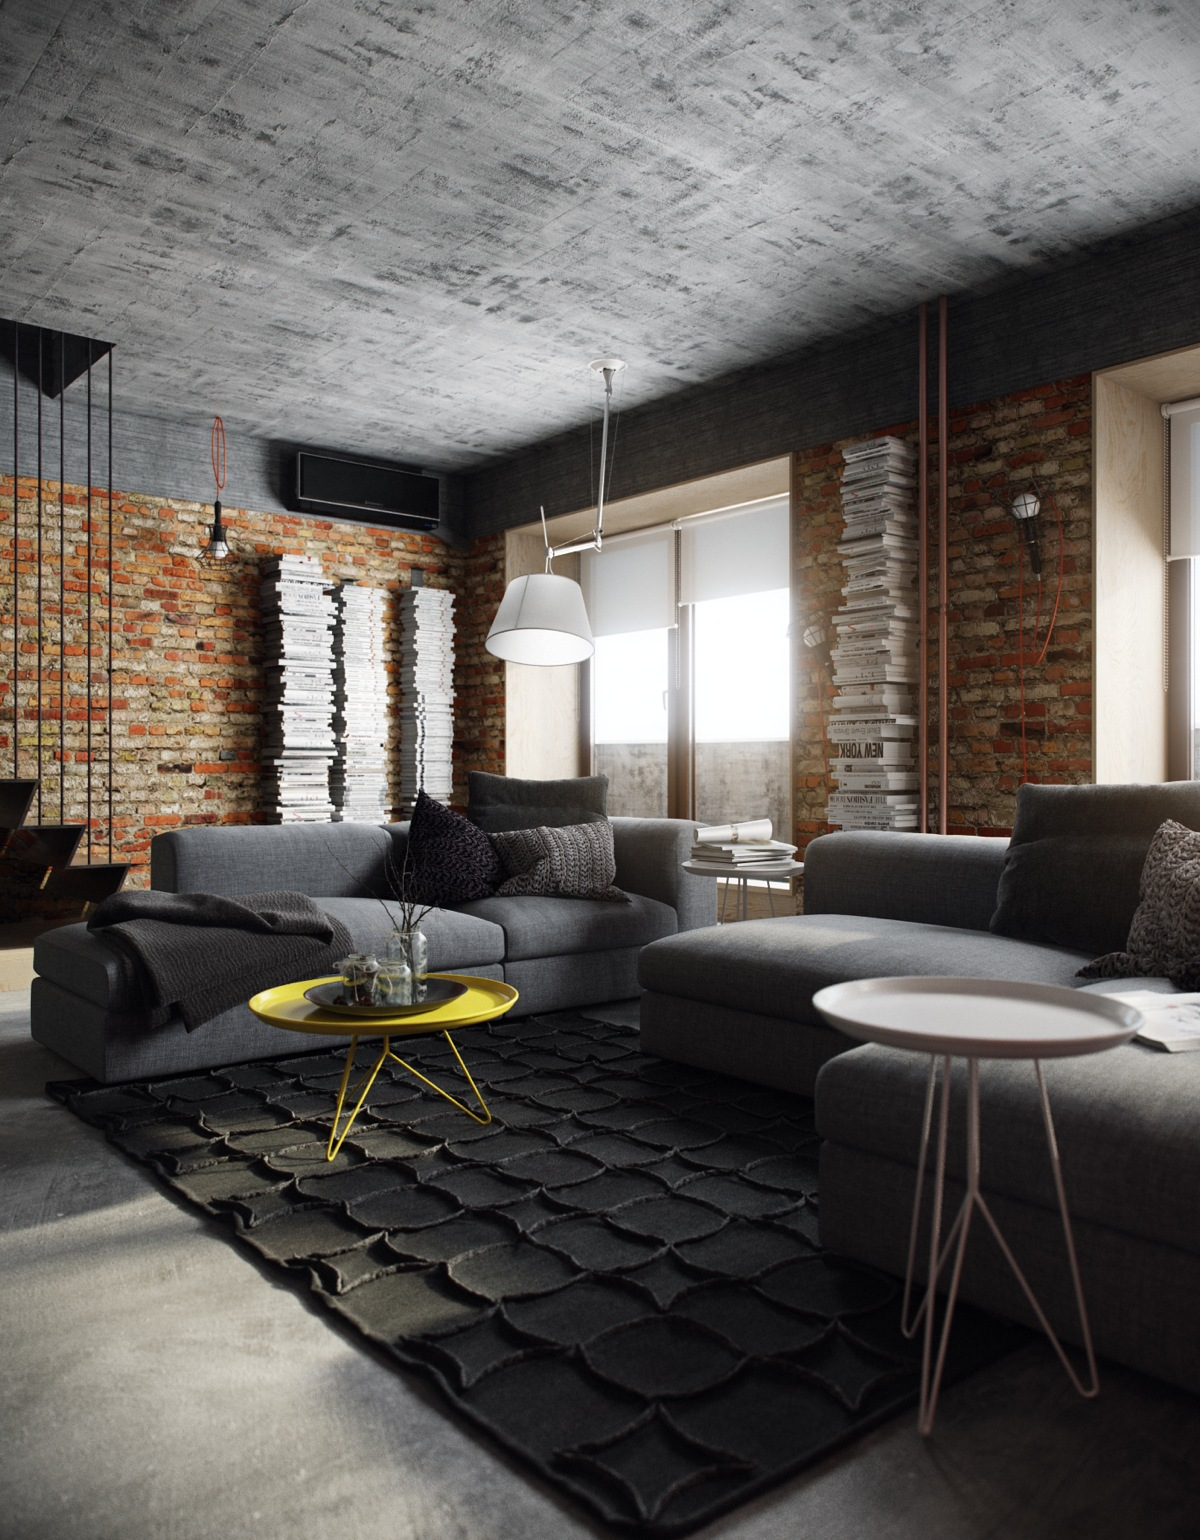 Creative loft space design interior design ideas Creative interior ideas